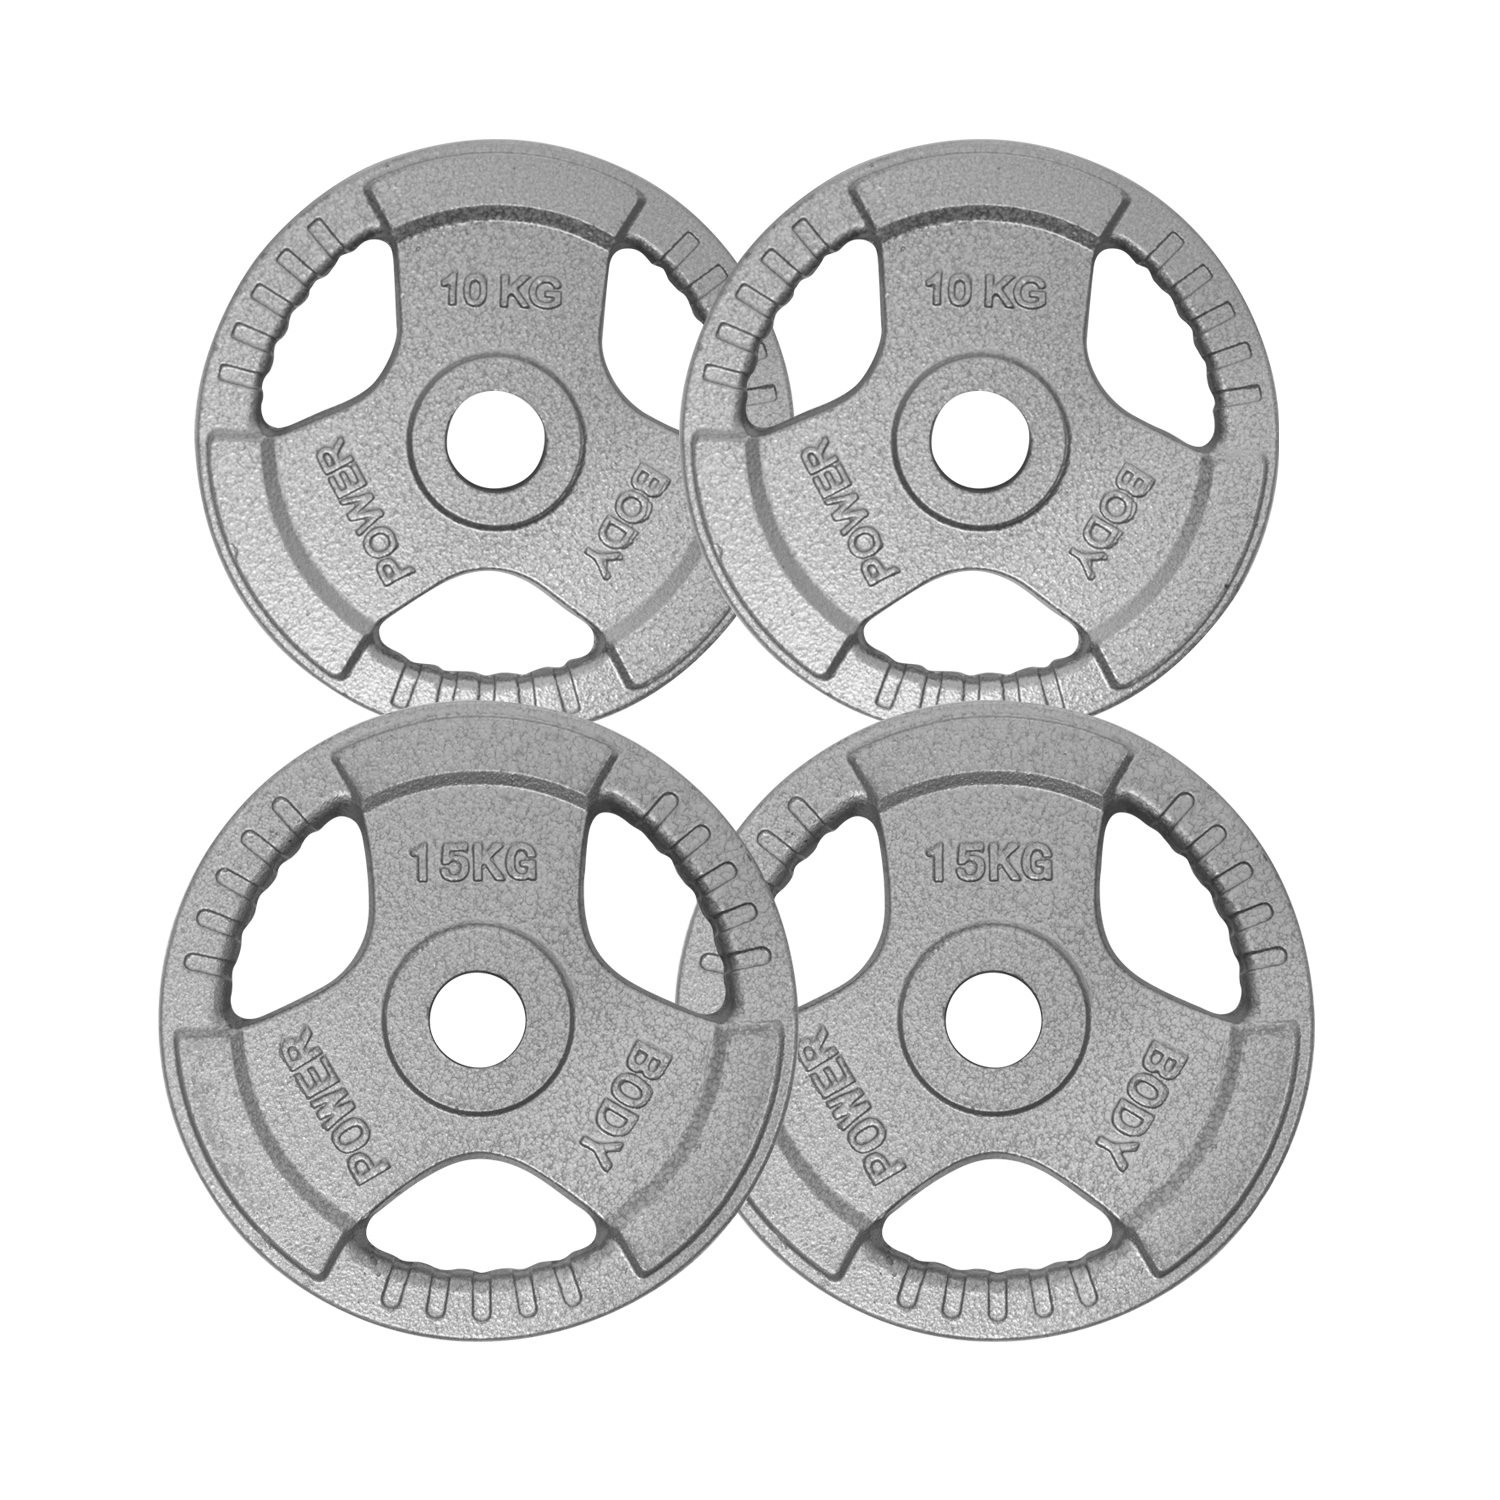 Bodypower Tri Grip Olympic (2 Inch) Disc Kit - 50kg